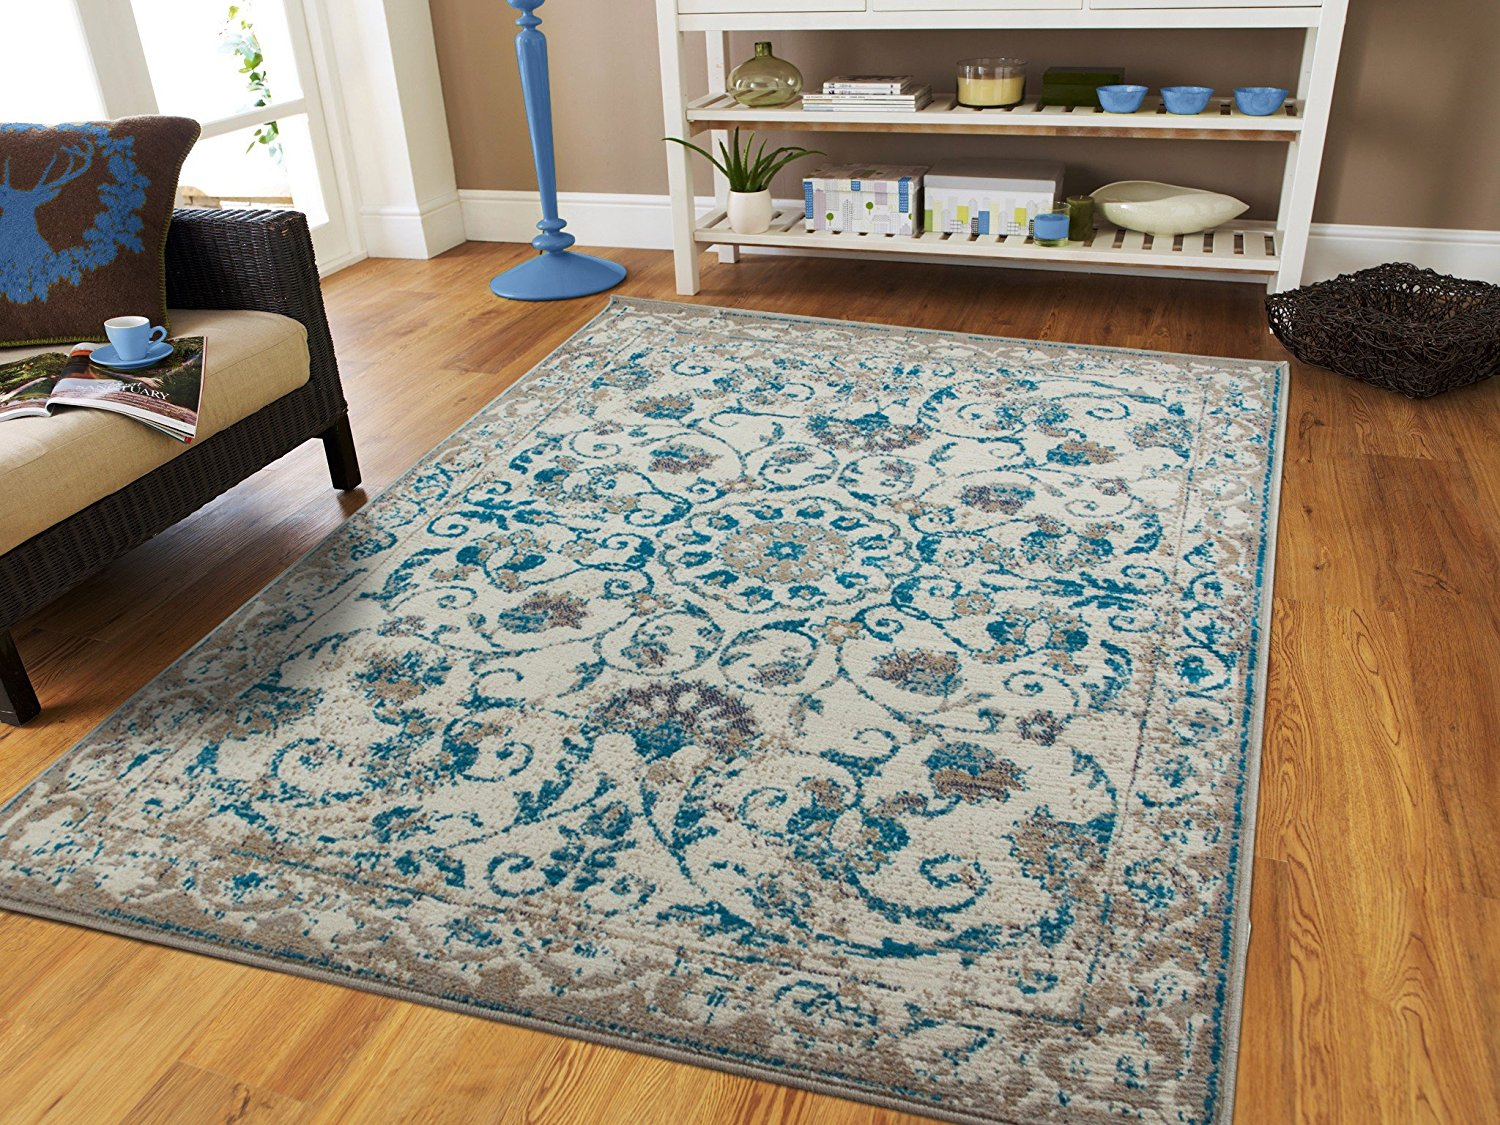 Awesome Traditional Vintage Area Rug Distressed Rugs Blue Area Rugs On Clearance 5x8  Gray Area Rugs For